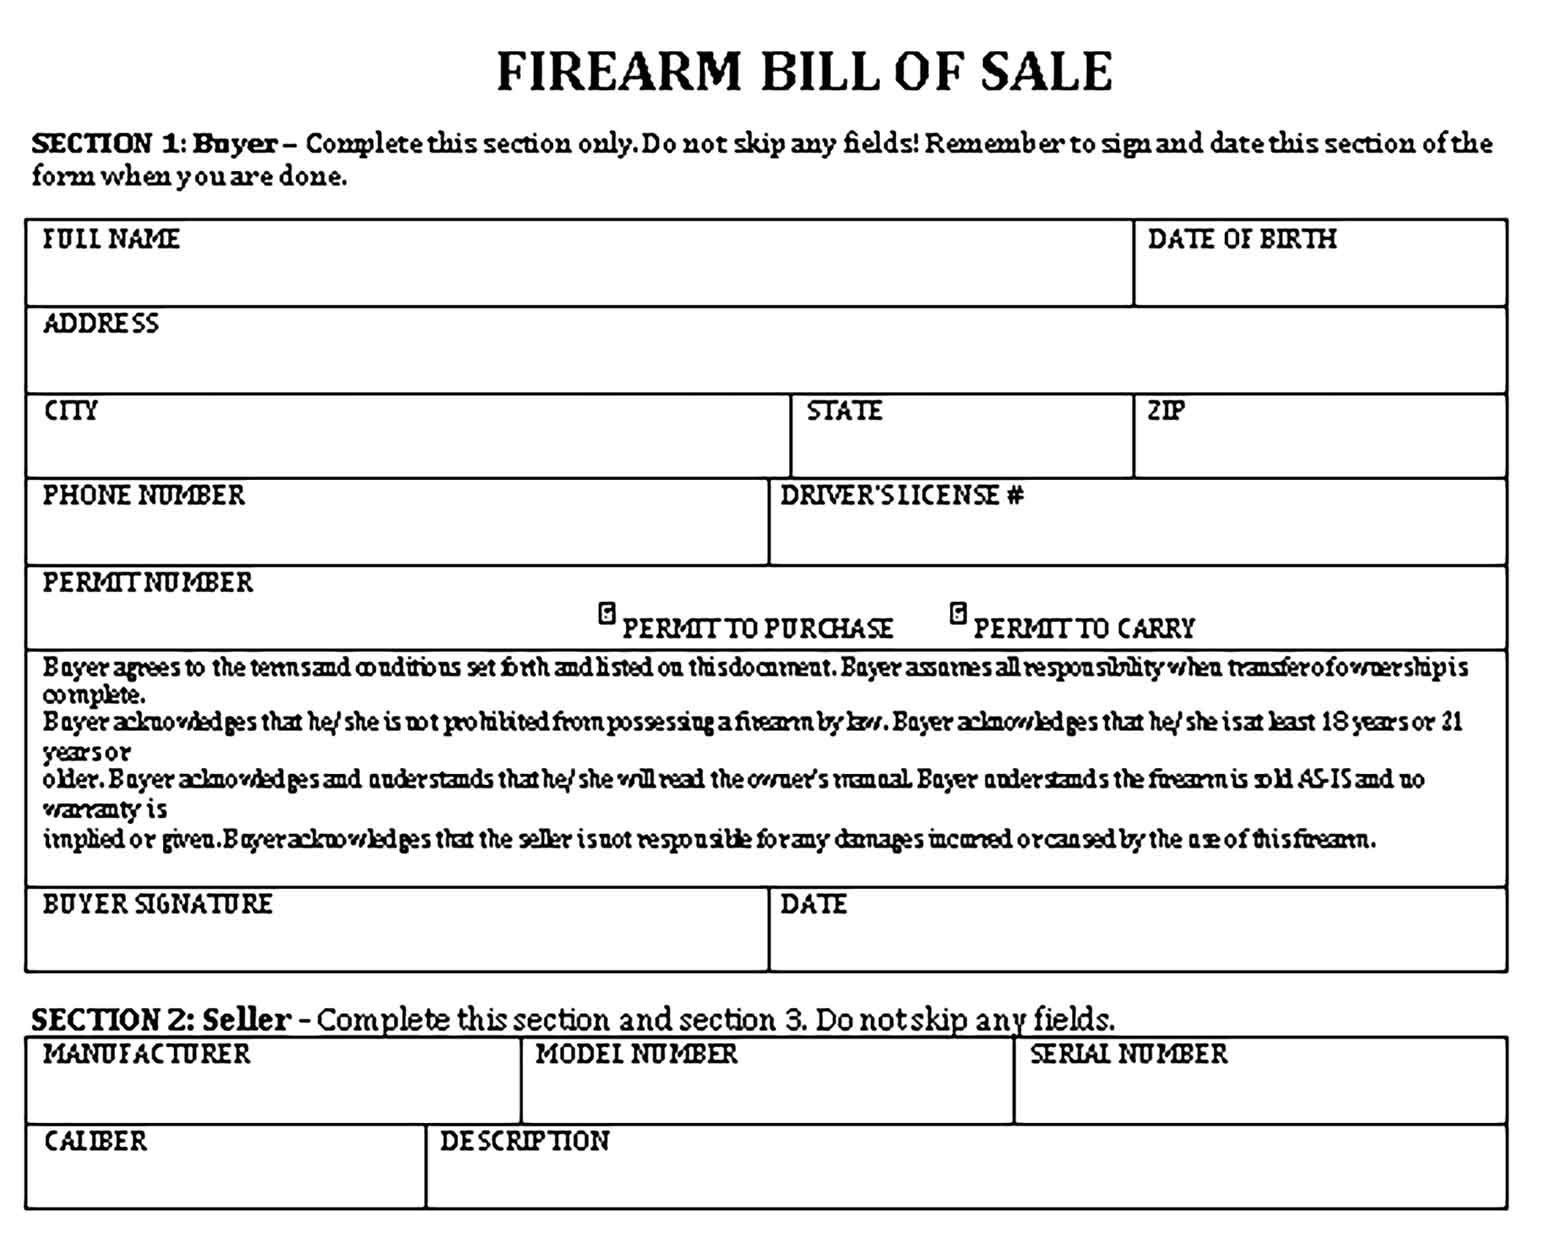 Sample firearm bill of sale free Templates